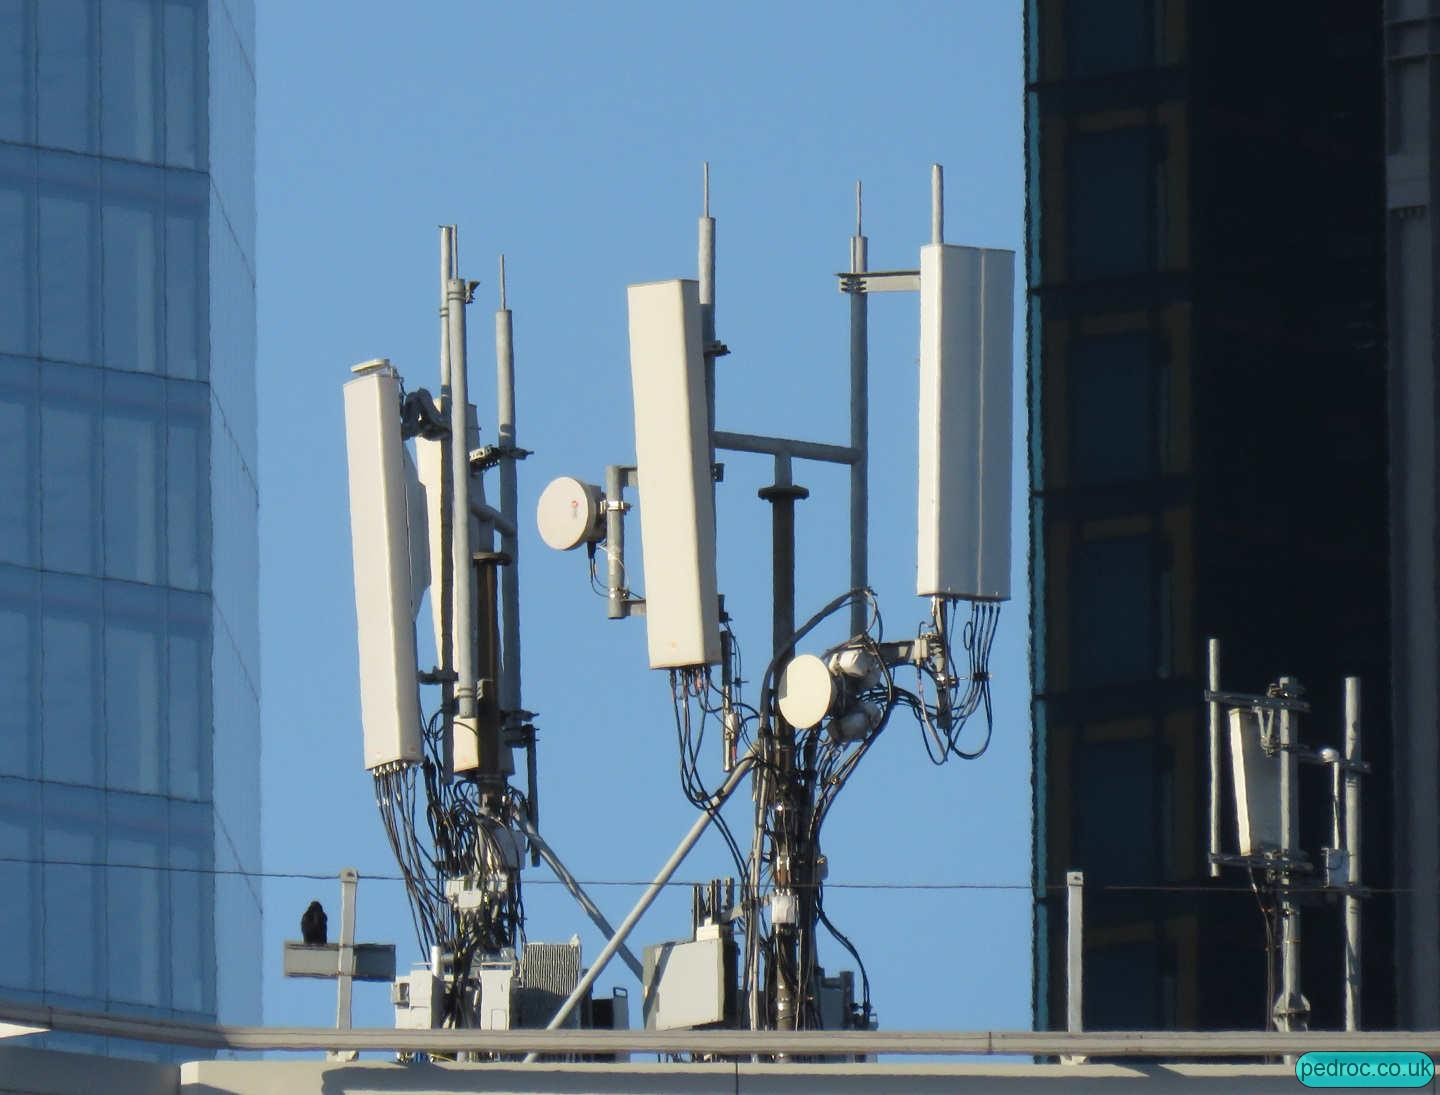 Cannon Street O2 Huawei and Vodafone array.